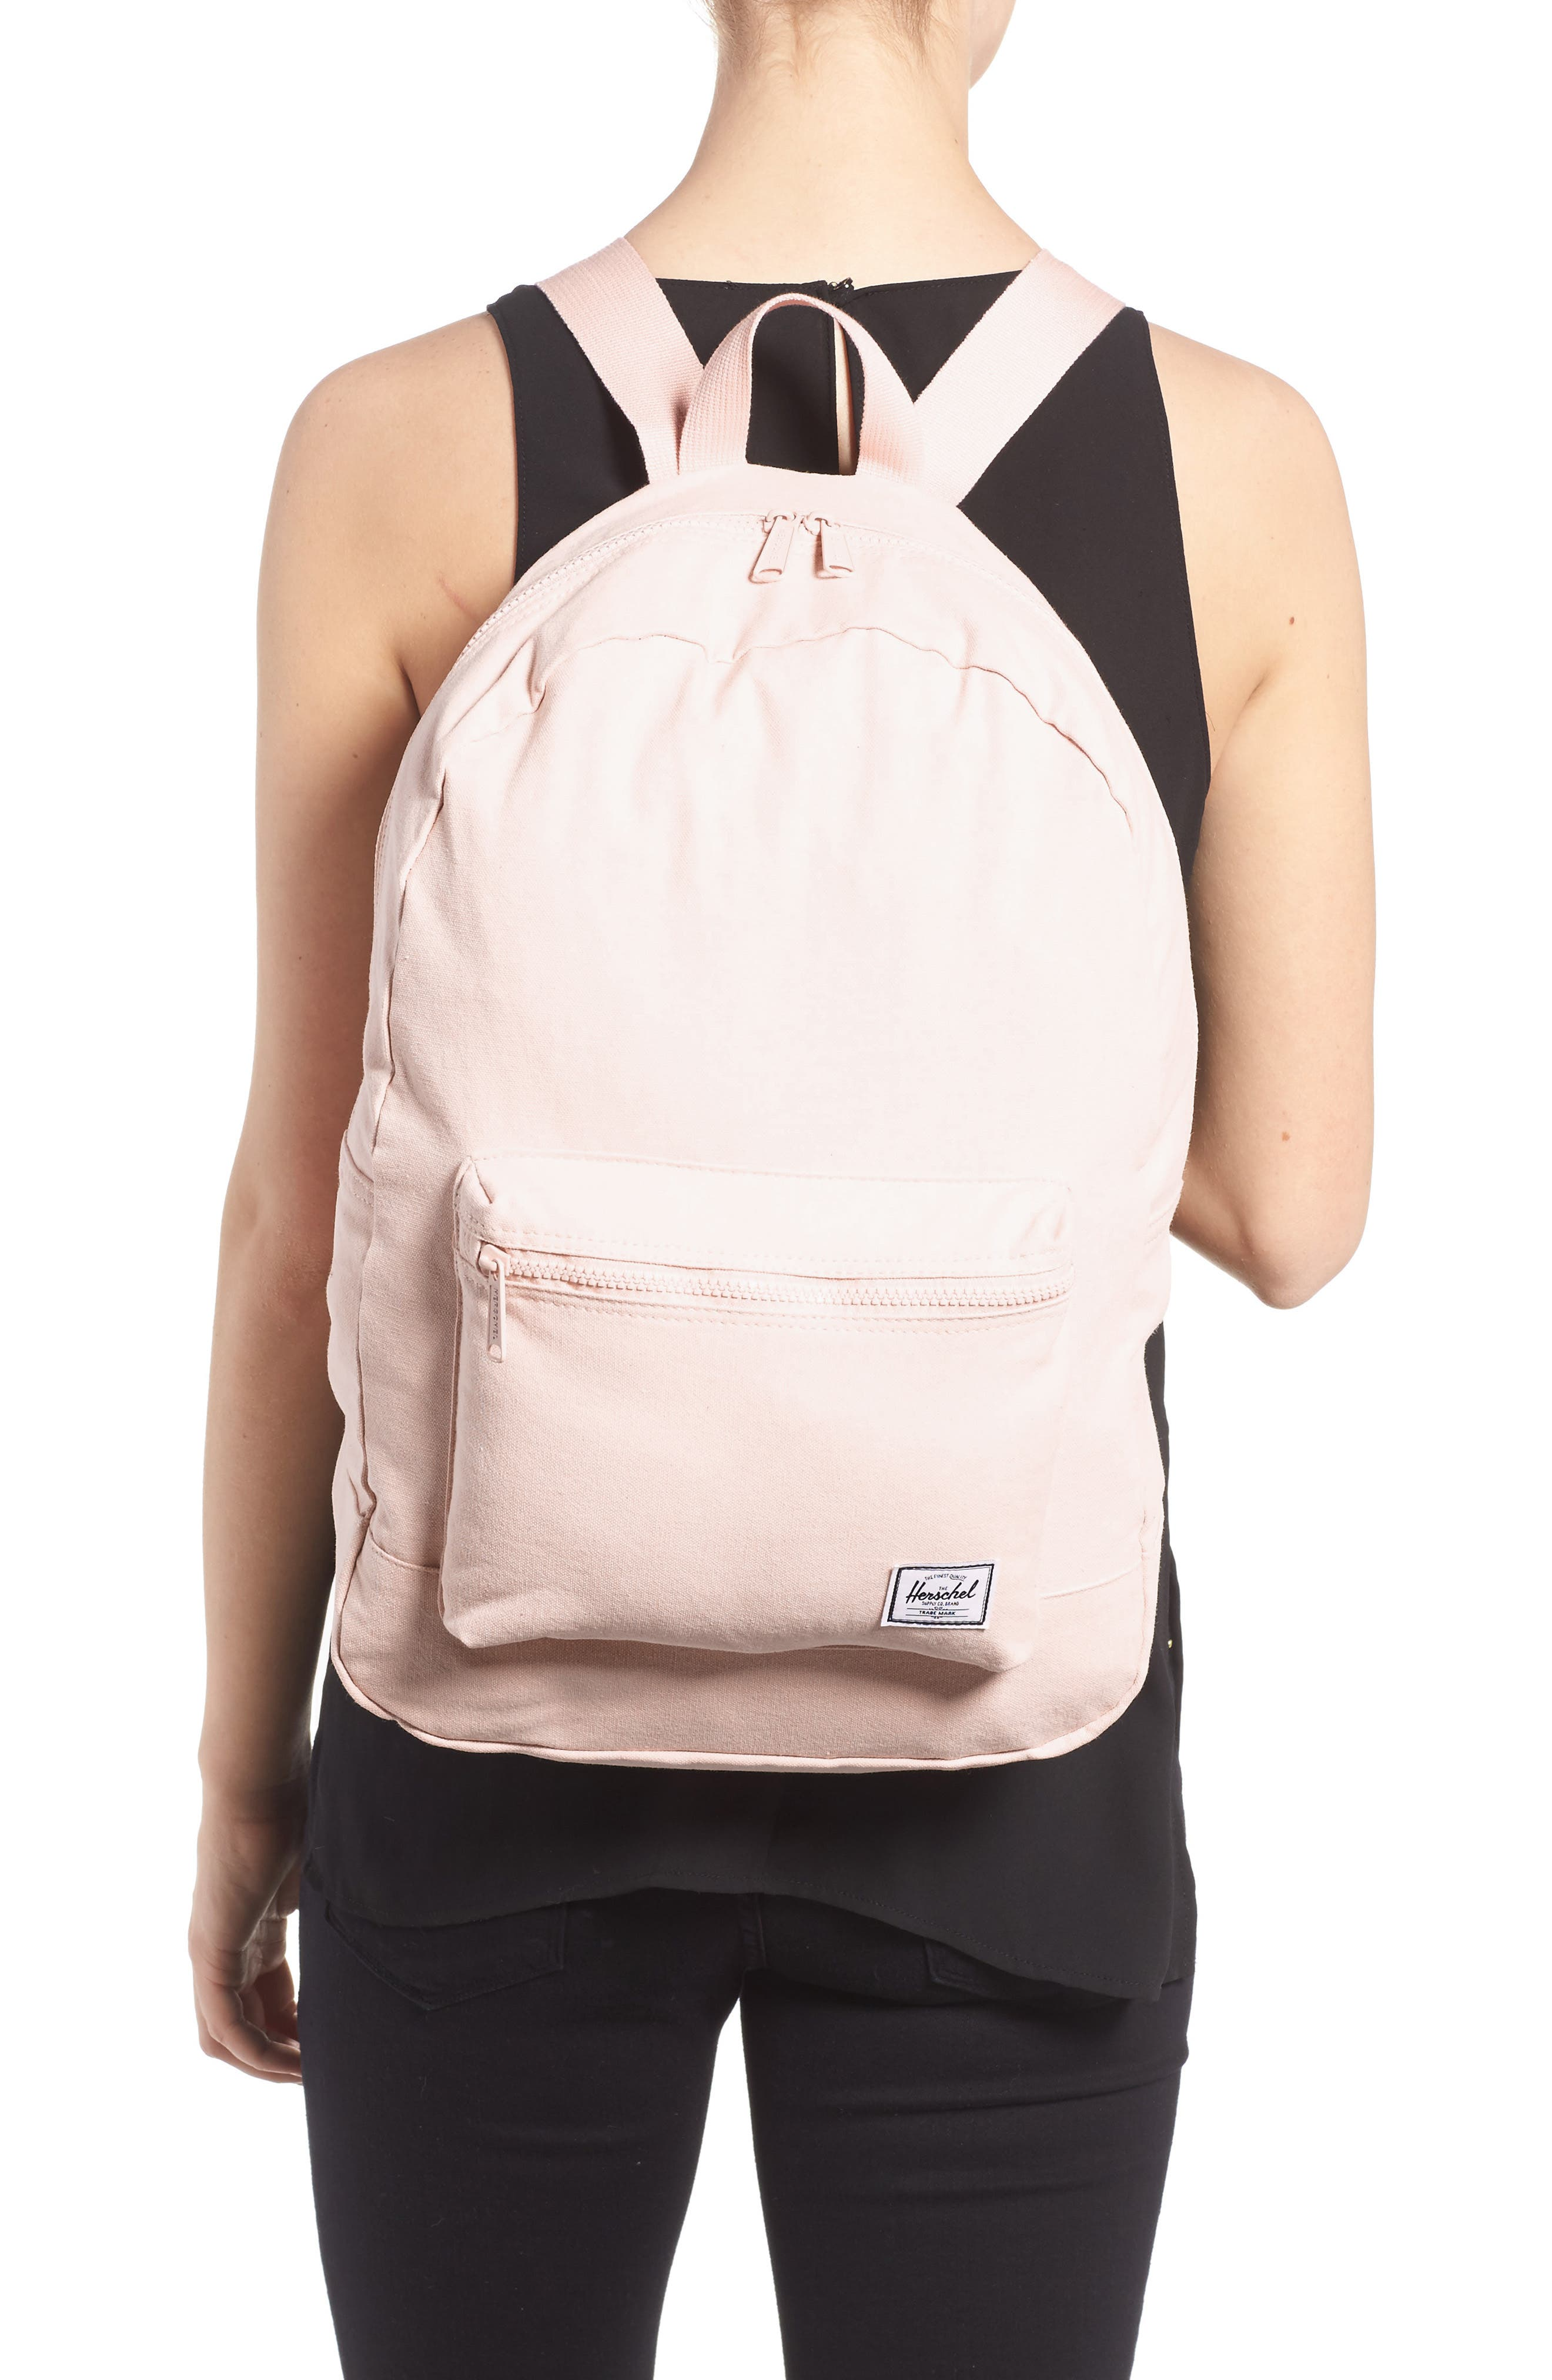 Cotton Casuals Daypack Backpack,                             Alternate thumbnail 18, color,